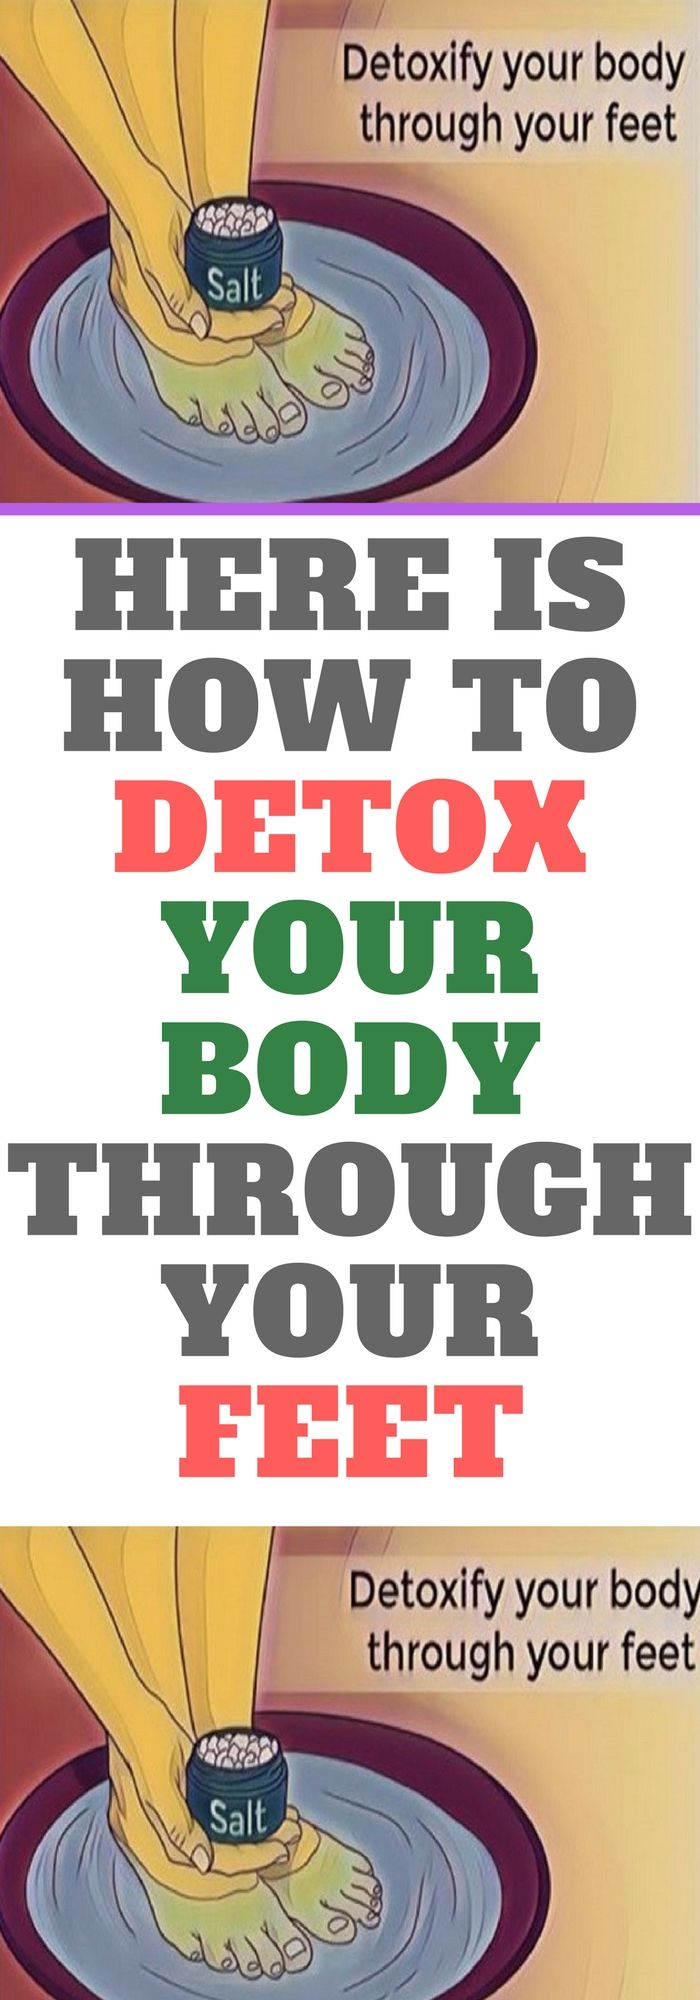 Best 25 foot detox ideas on pinterest foot detox soak easy foot detox treatments include foot detox pads and detox foot spas which can be either nvjuhfo Images